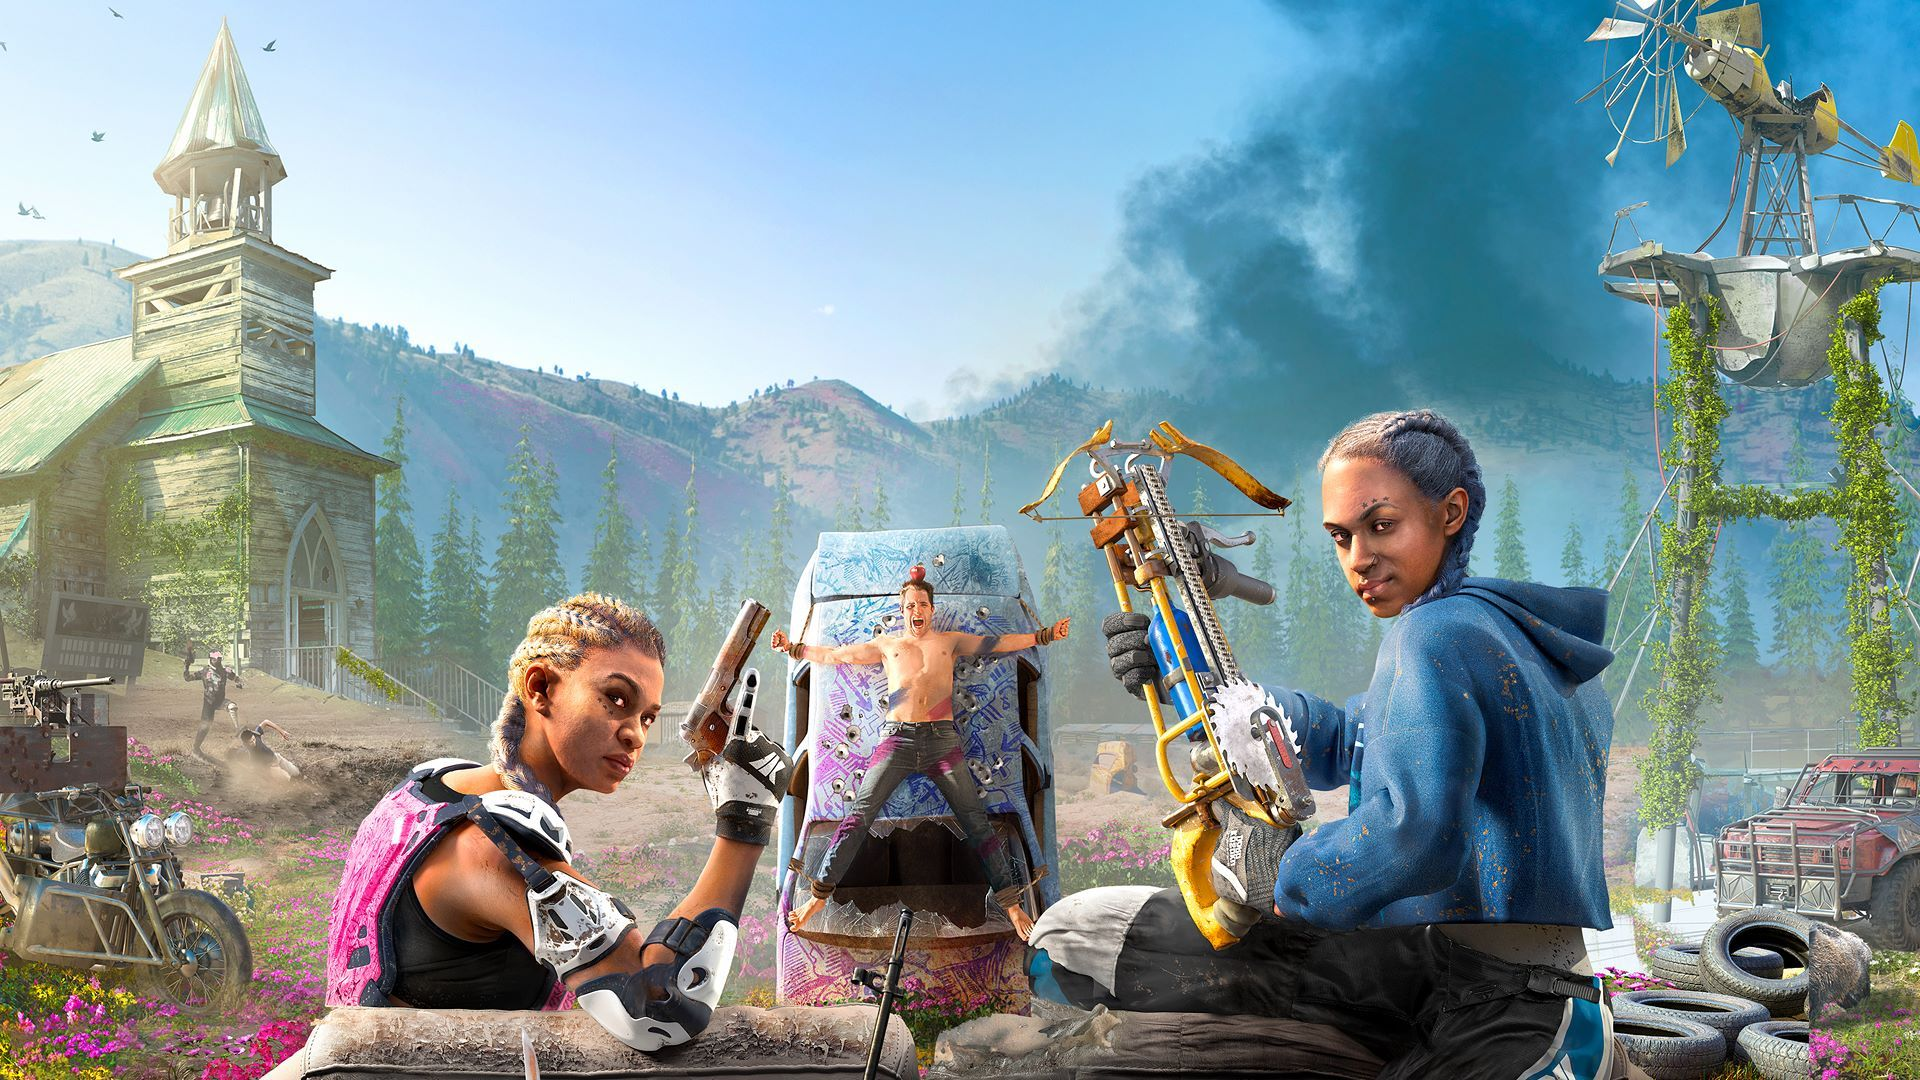 far cry new dawn wallpaper 1080p